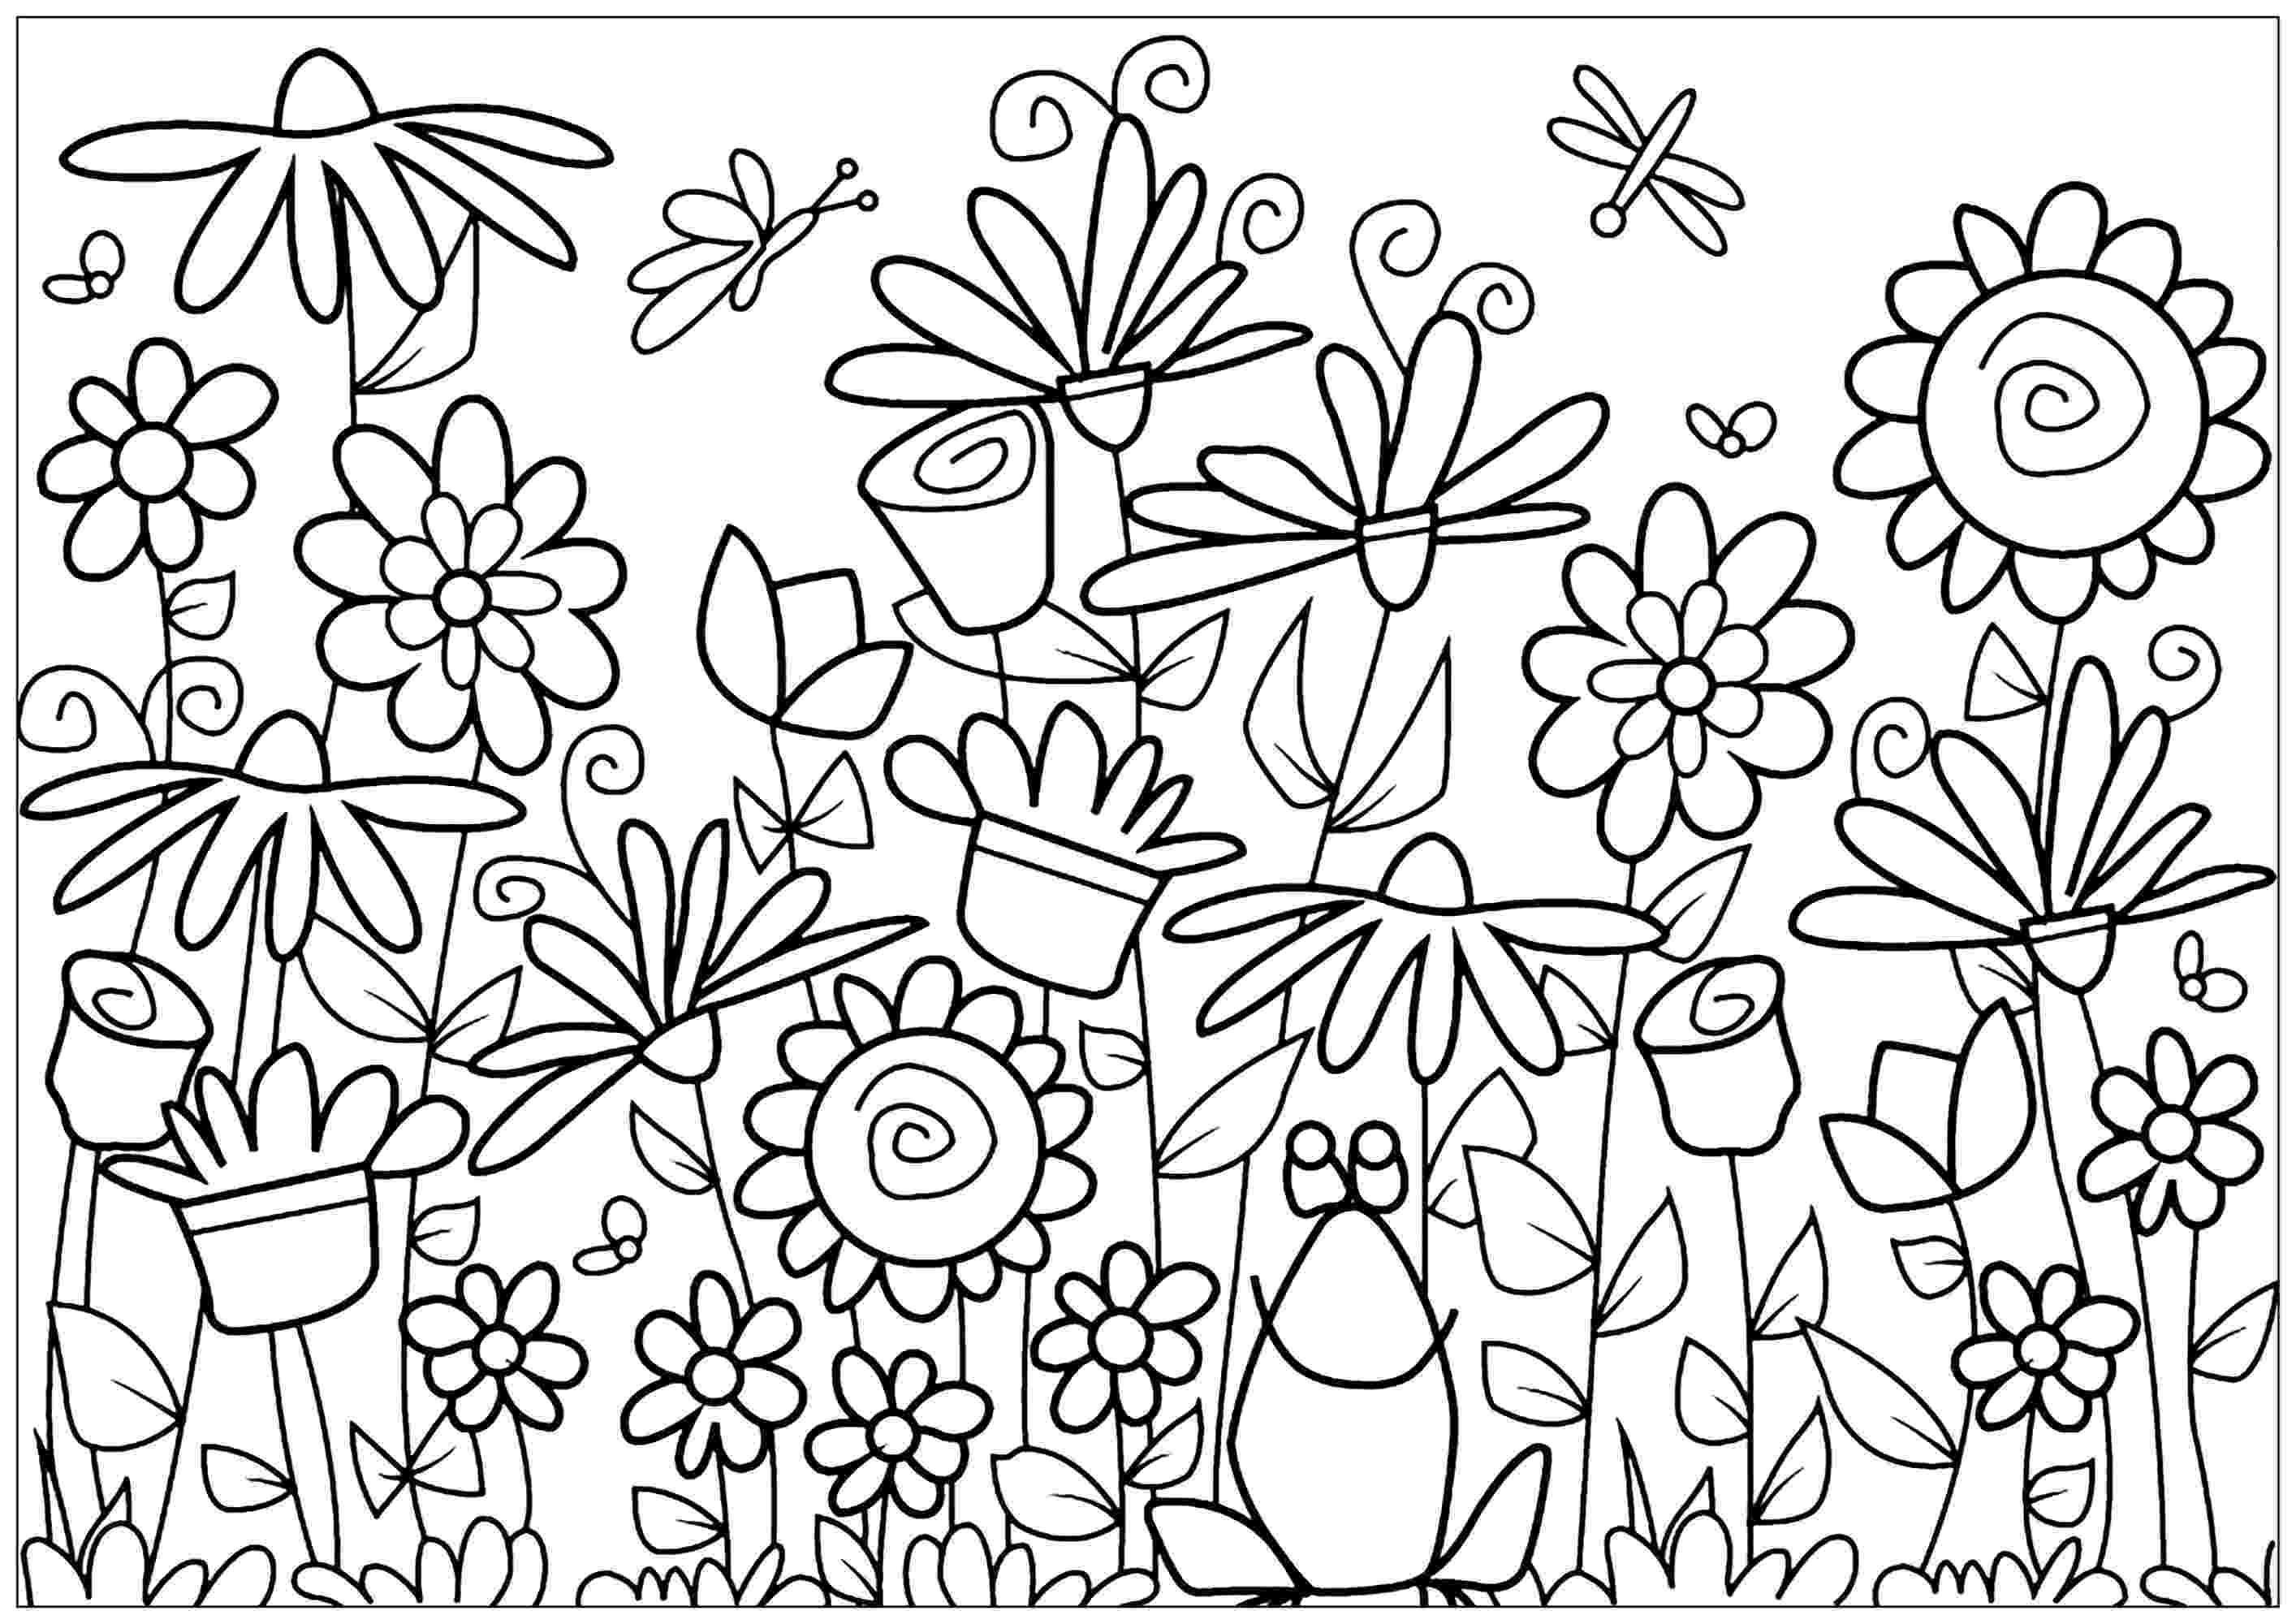 colouring pages for flowers various flowers with a cute frog flowers adult coloring flowers for pages colouring